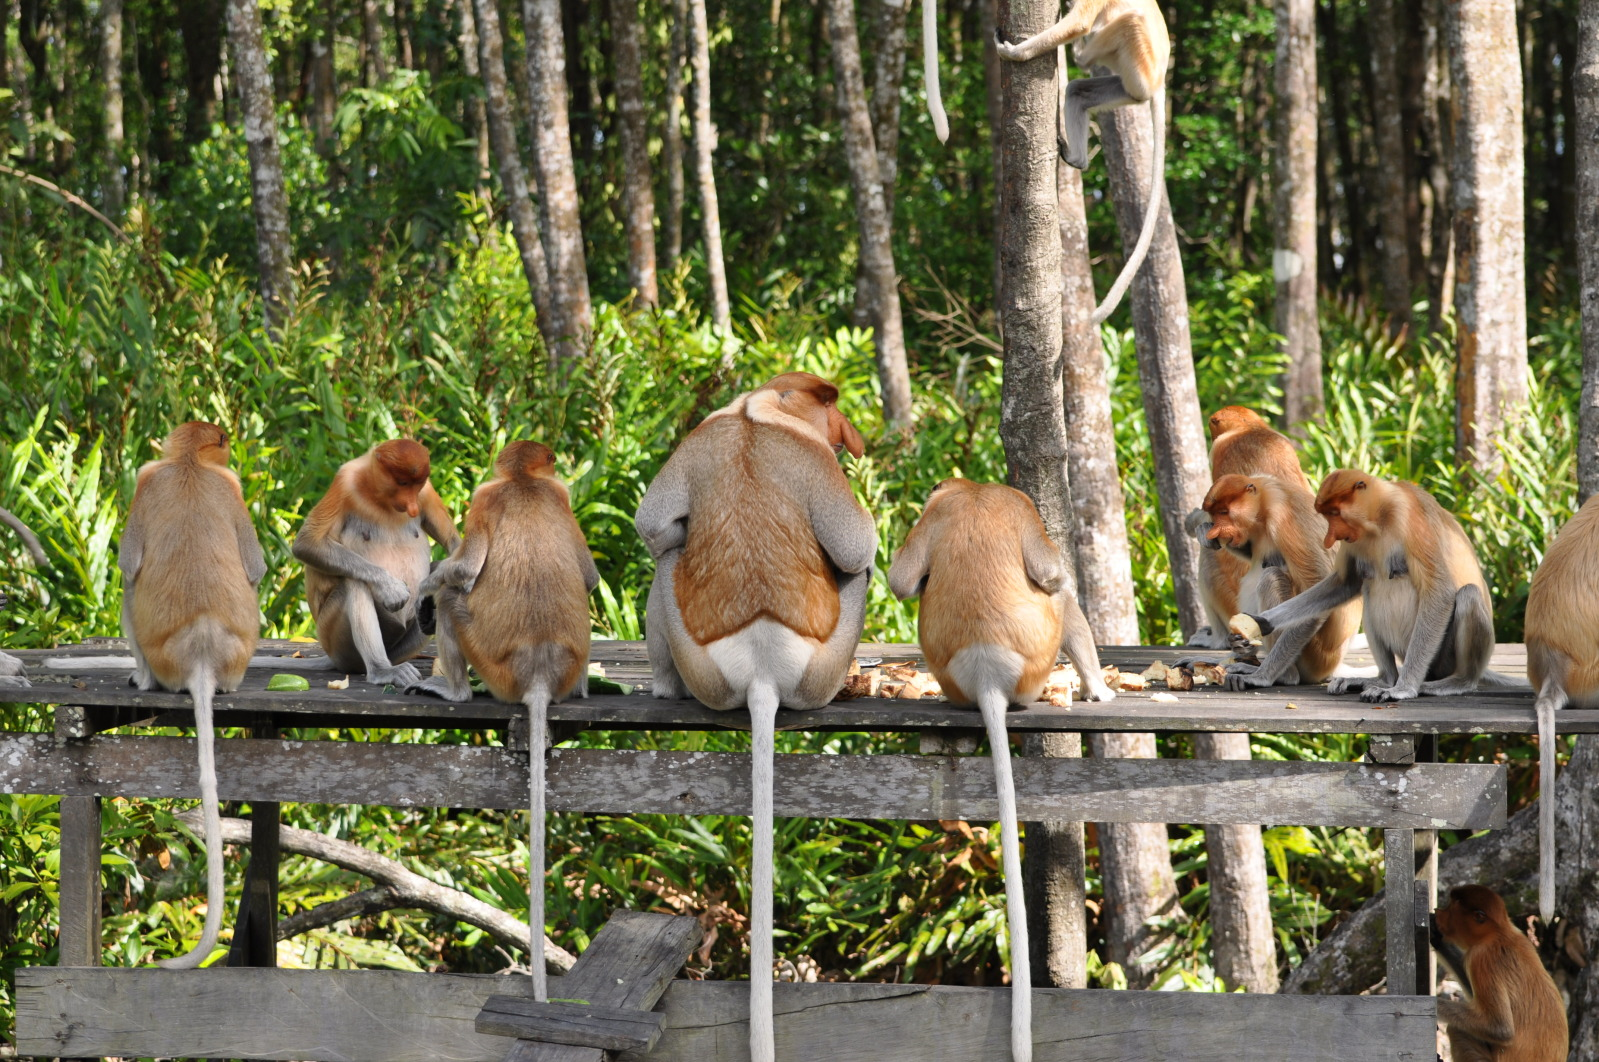 Proboscis monkey that is endemic to the southeast Asian island of Borneo